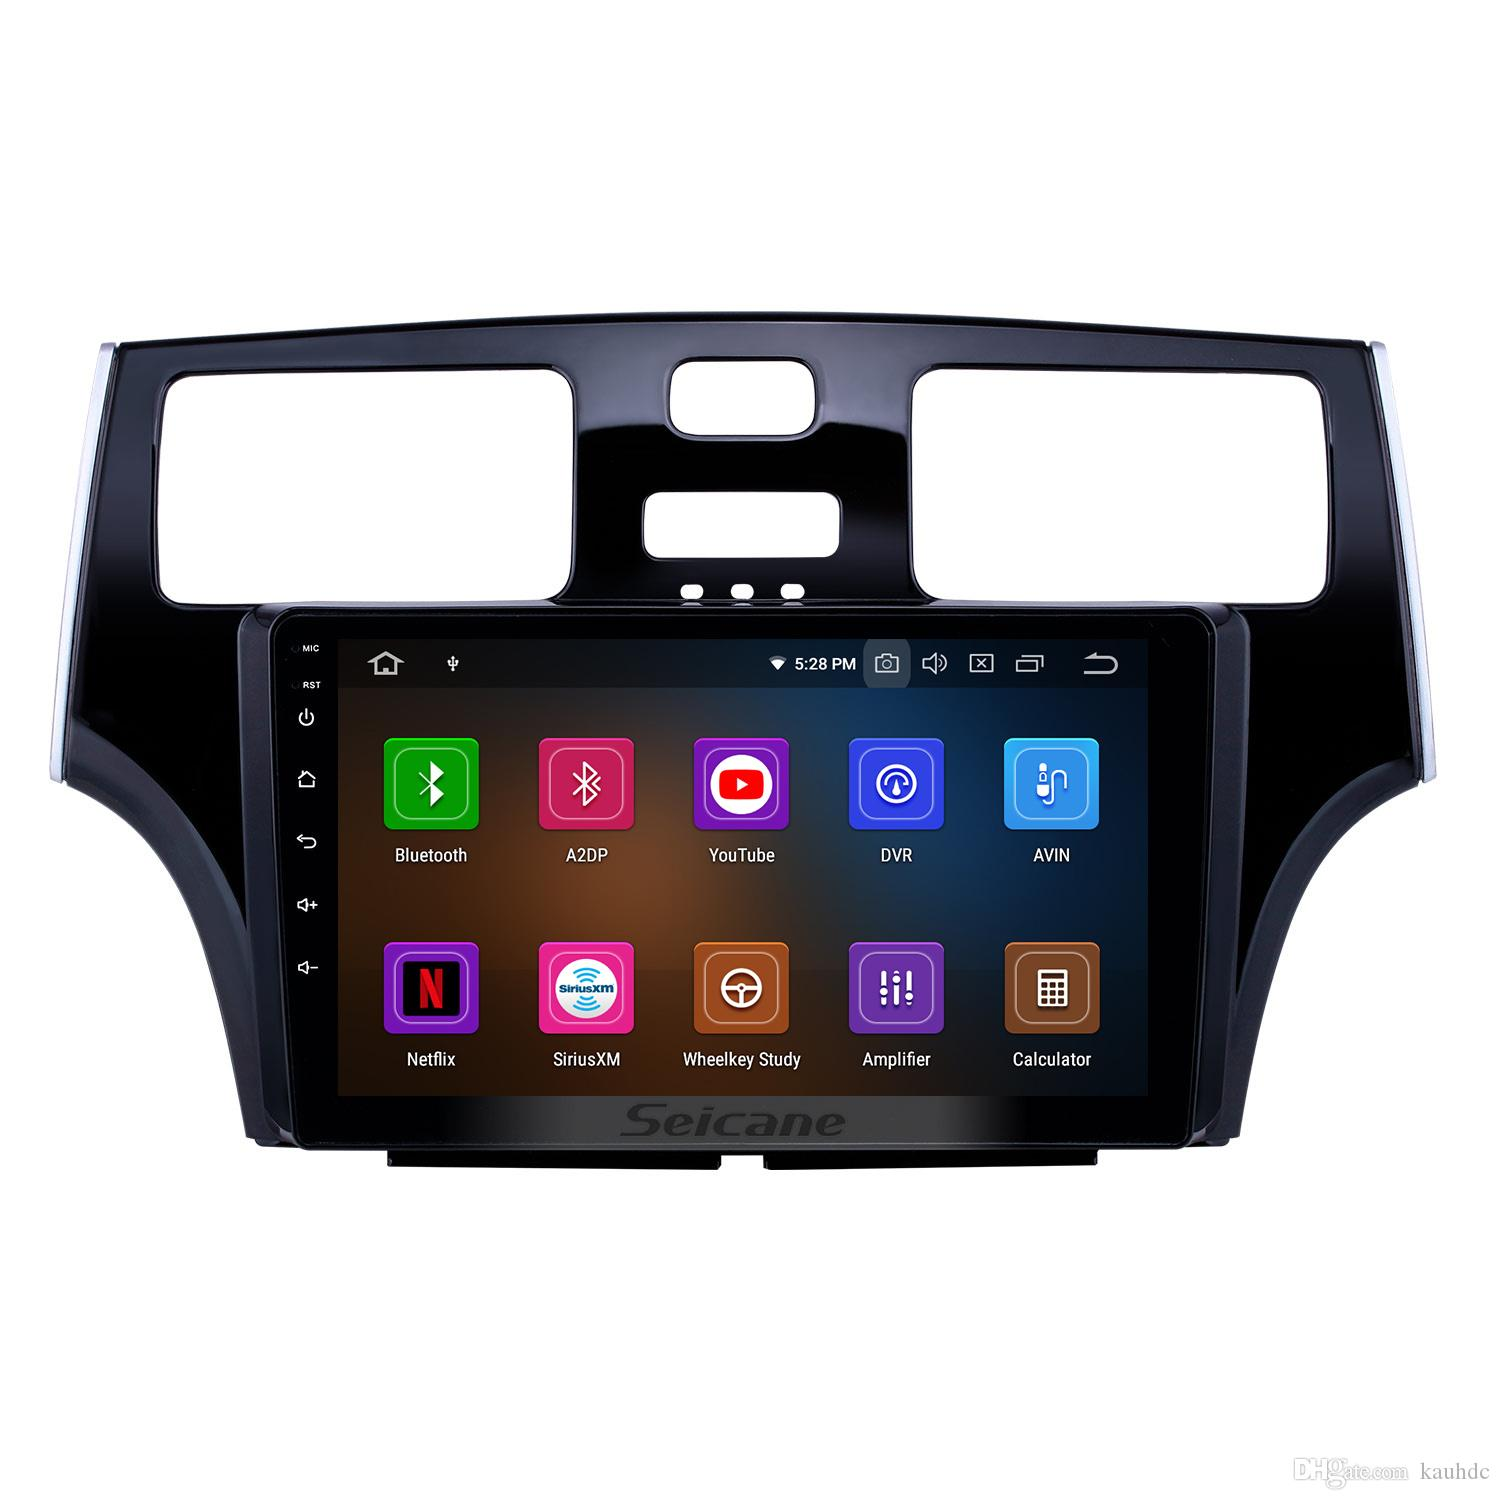 hight resolution of 9 inch android 9 0 touchscreen car radio for 2001 2002 2003 2004 2005 lexus es with bluetooth gps navi wifi usb support rear camera car dvd portable dvd